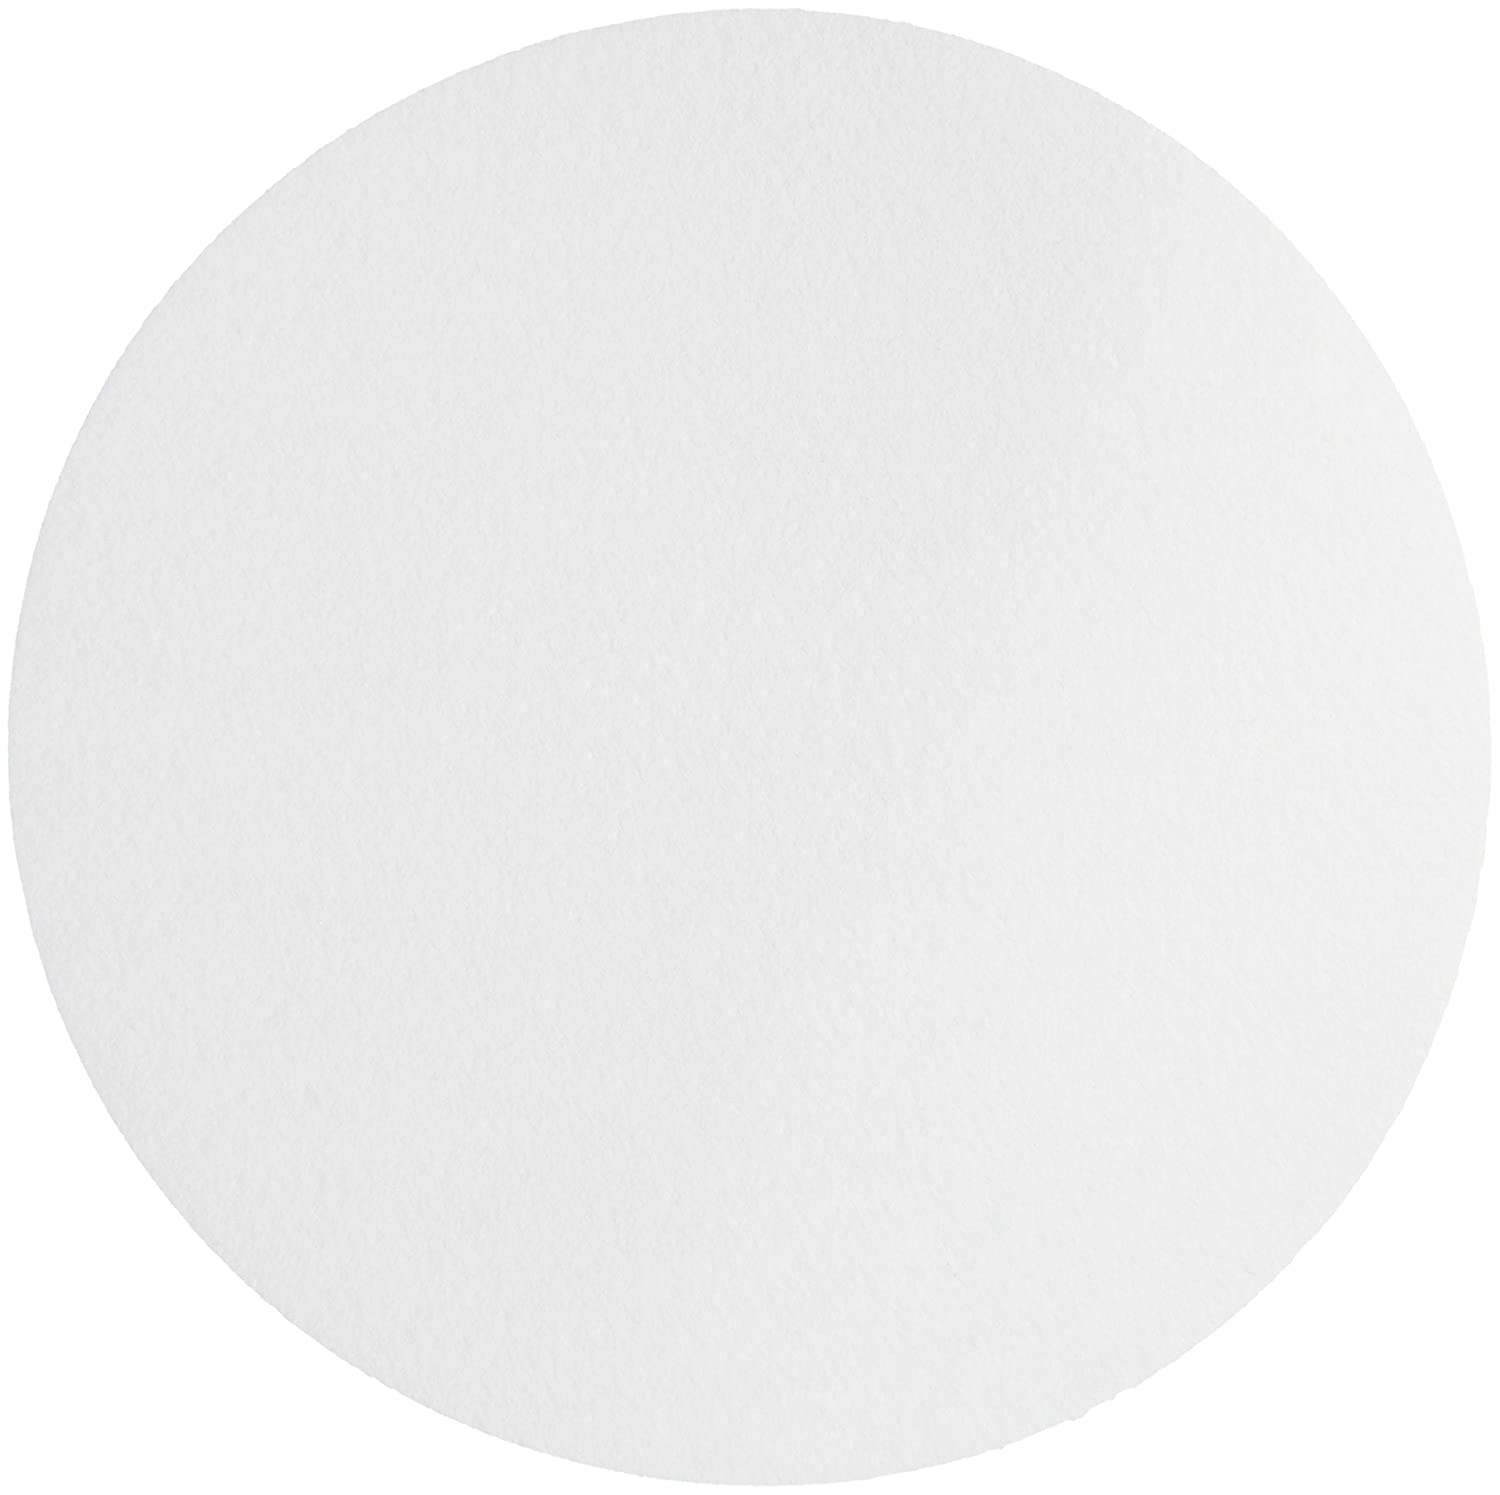 WHATMAN 1001085 Whatman standard qualitative filter paper Grade 1 GE Healthcare